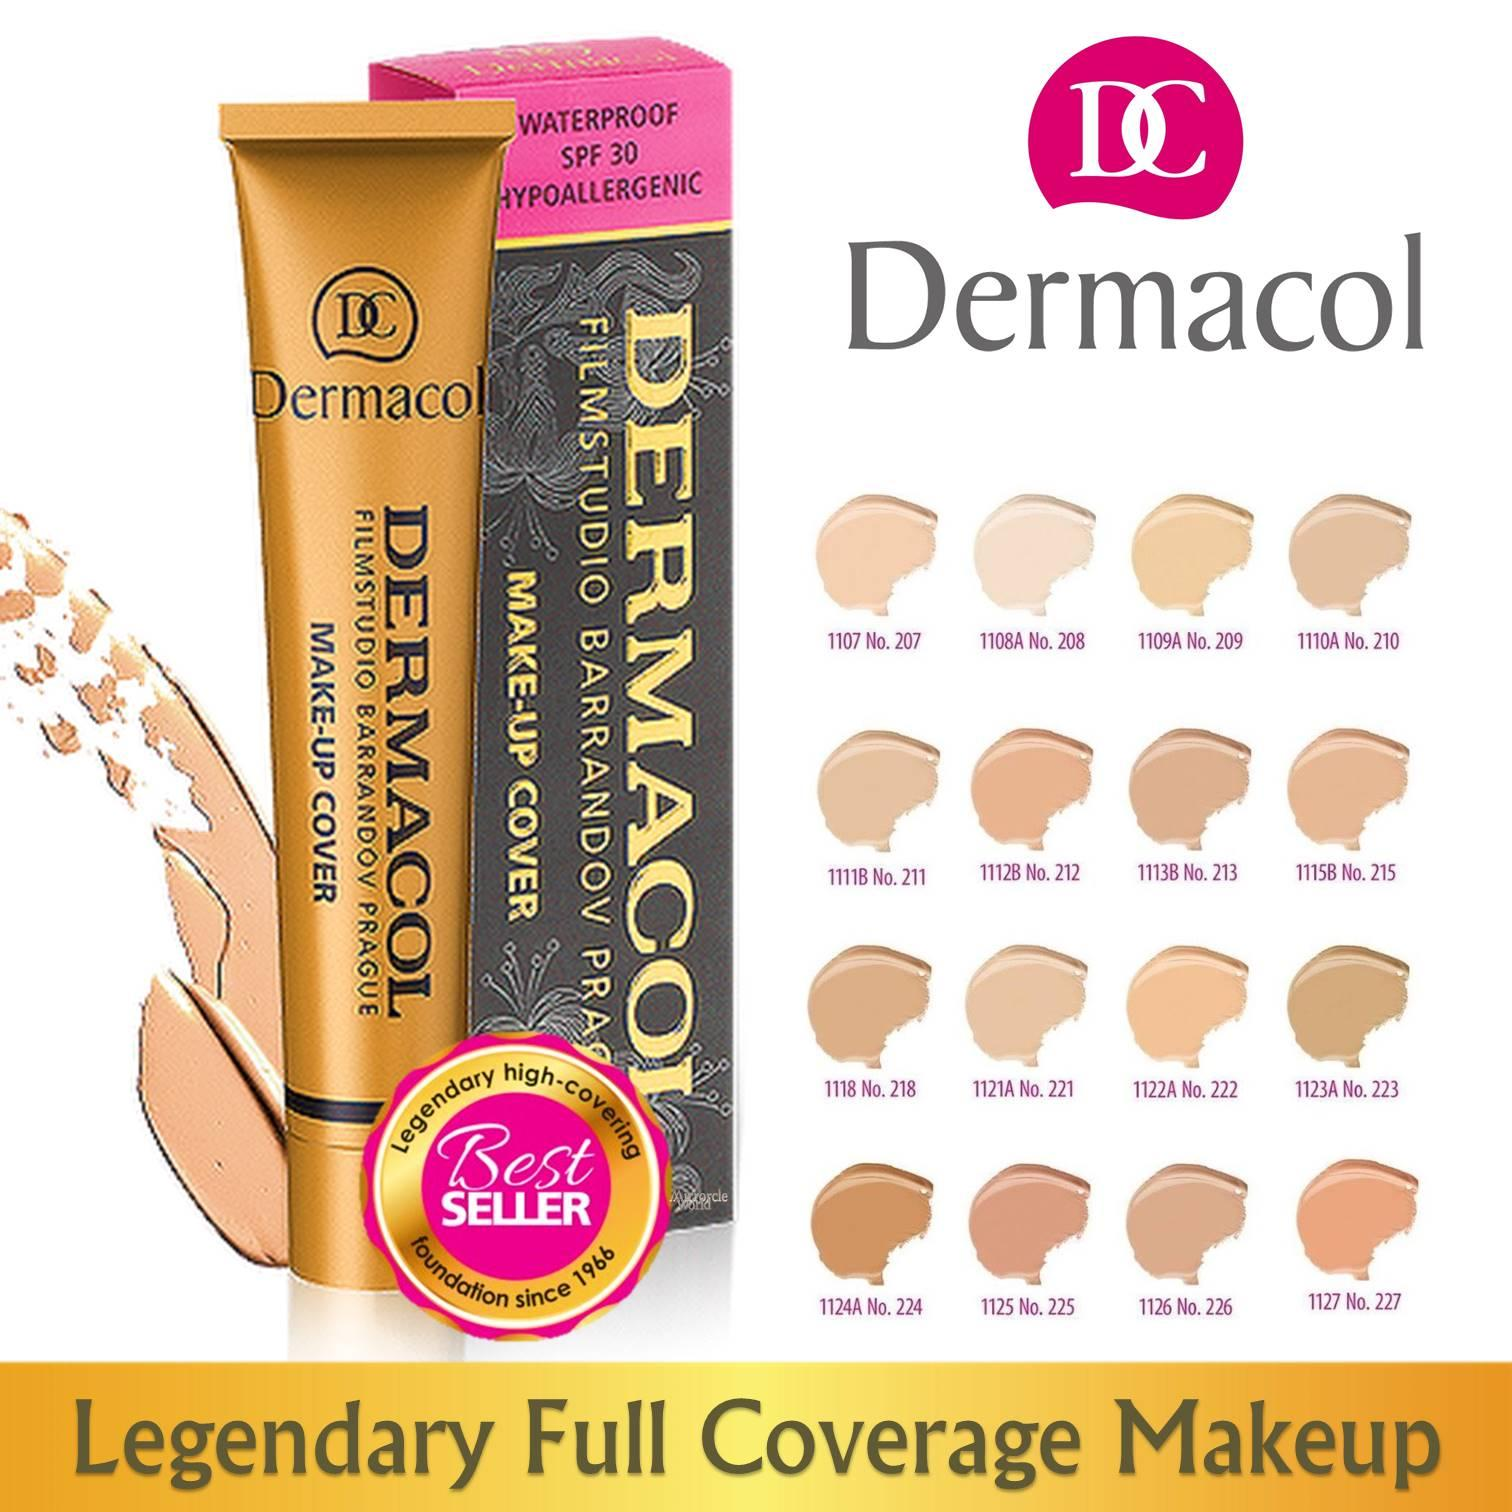 Dermacol Full Coverage Make Up Cover. Authentic Full Range Shade 207- 227. Comparable To Loreal, Maybelline, Missha, Etude House, Innisfree, Laneige Make-Up Foundation And Concealer. By Mirage.